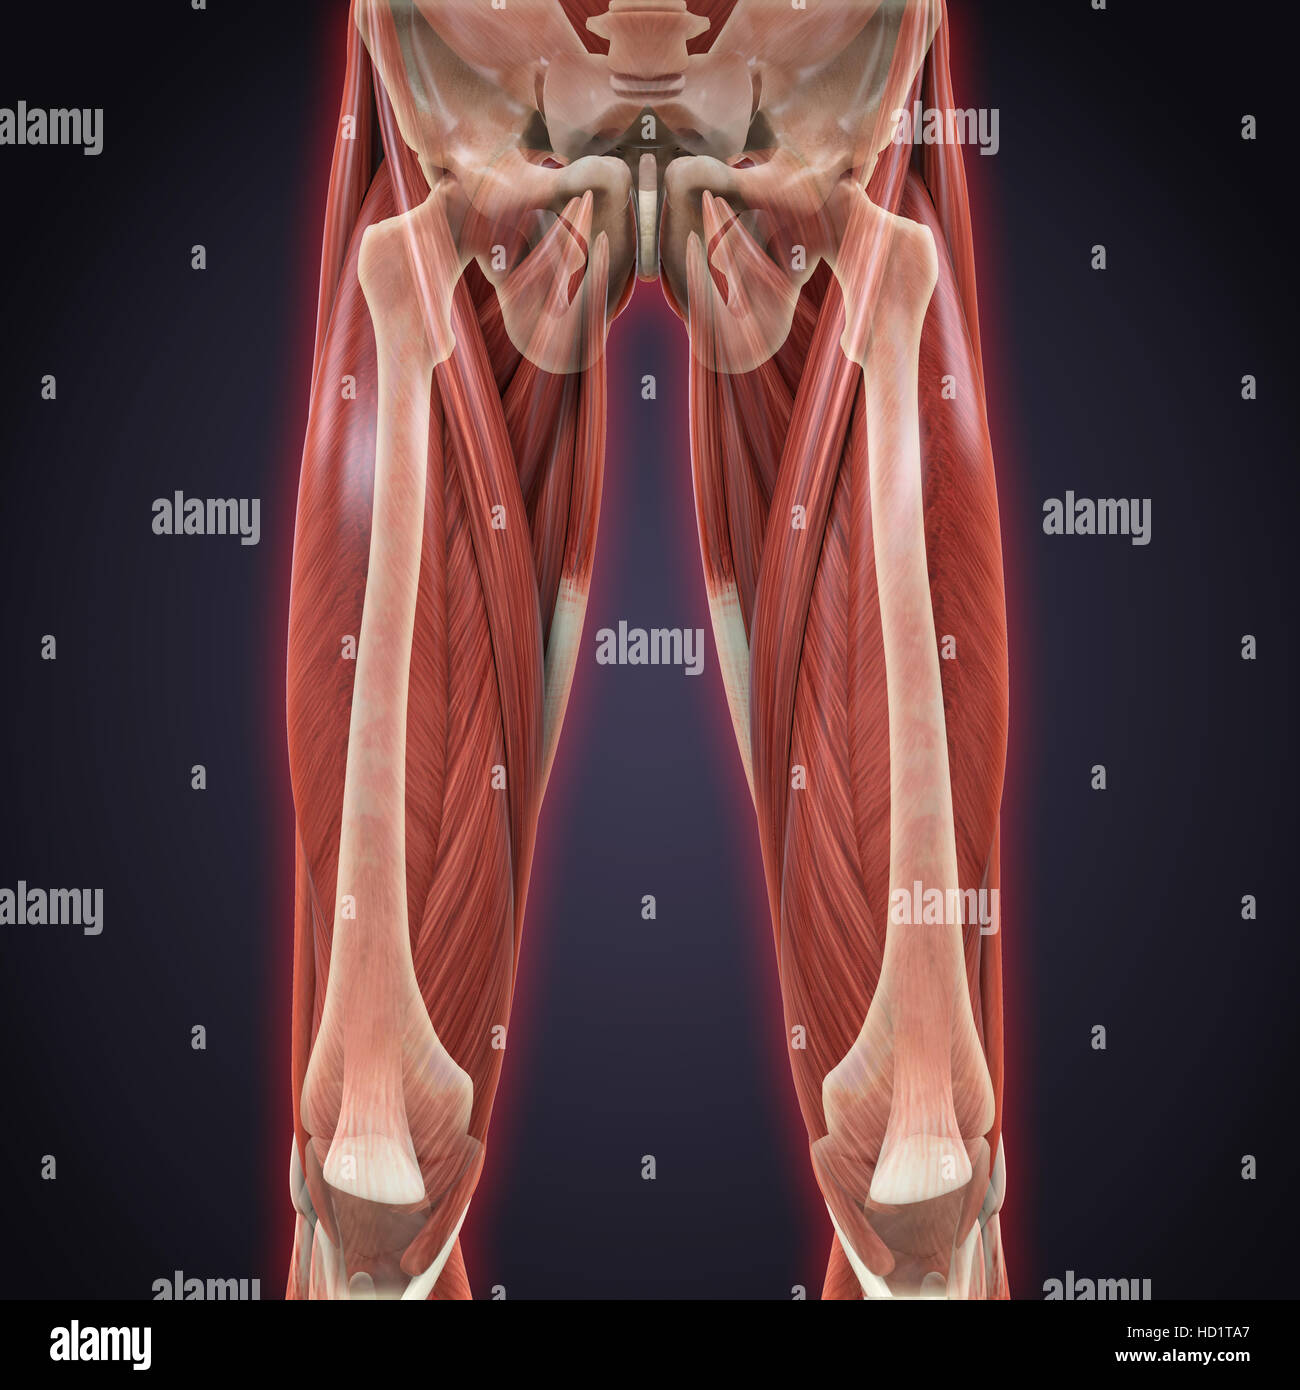 Thigh Adductor Muscles Stock Photos & Thigh Adductor Muscles Stock ...